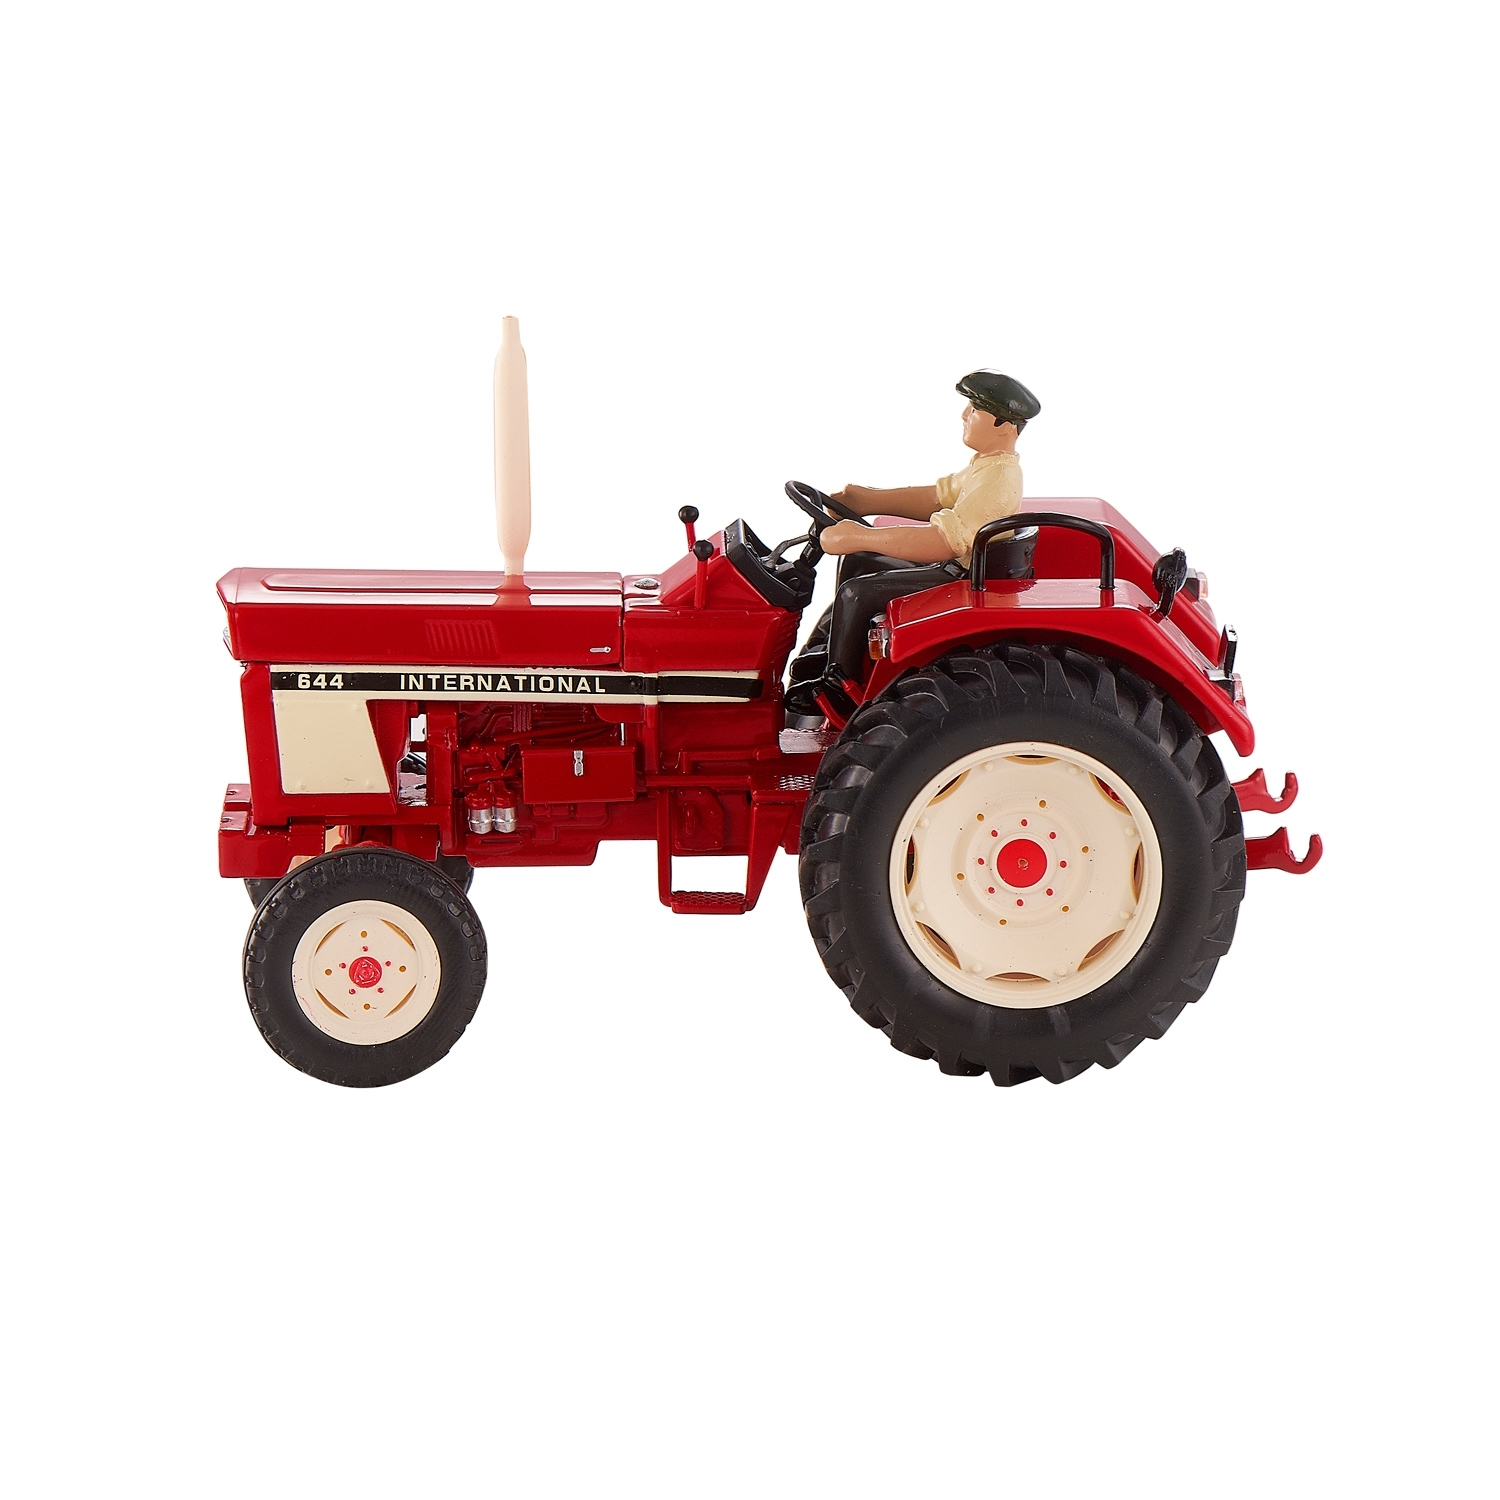 Case International Harvester Tractor : Case ih international harvester model